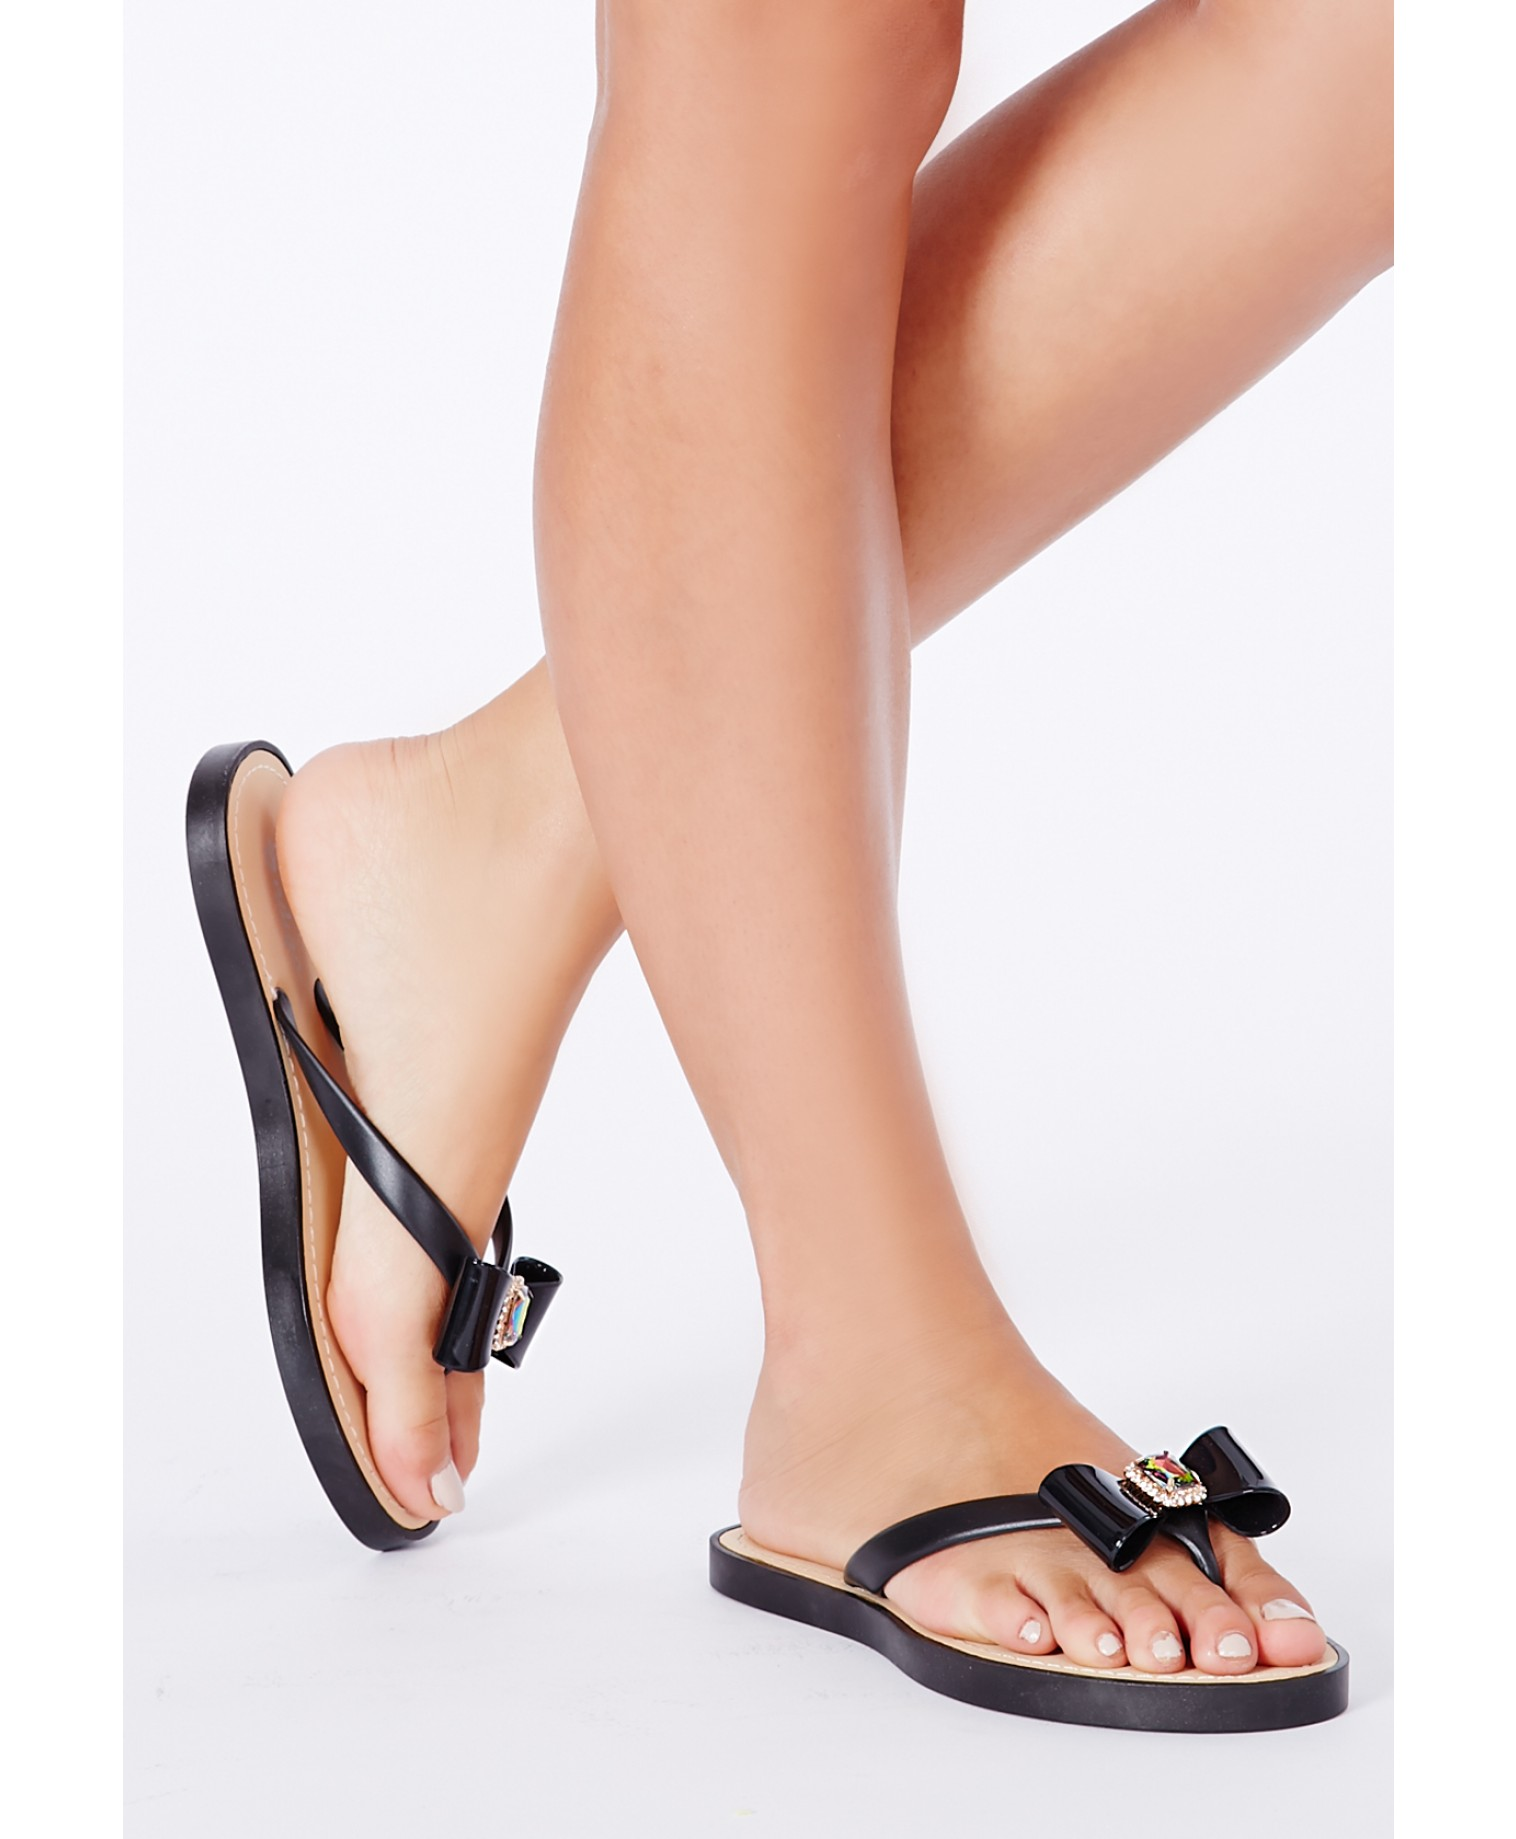 Natsuko flipflops with bow and gem detailing in black 3